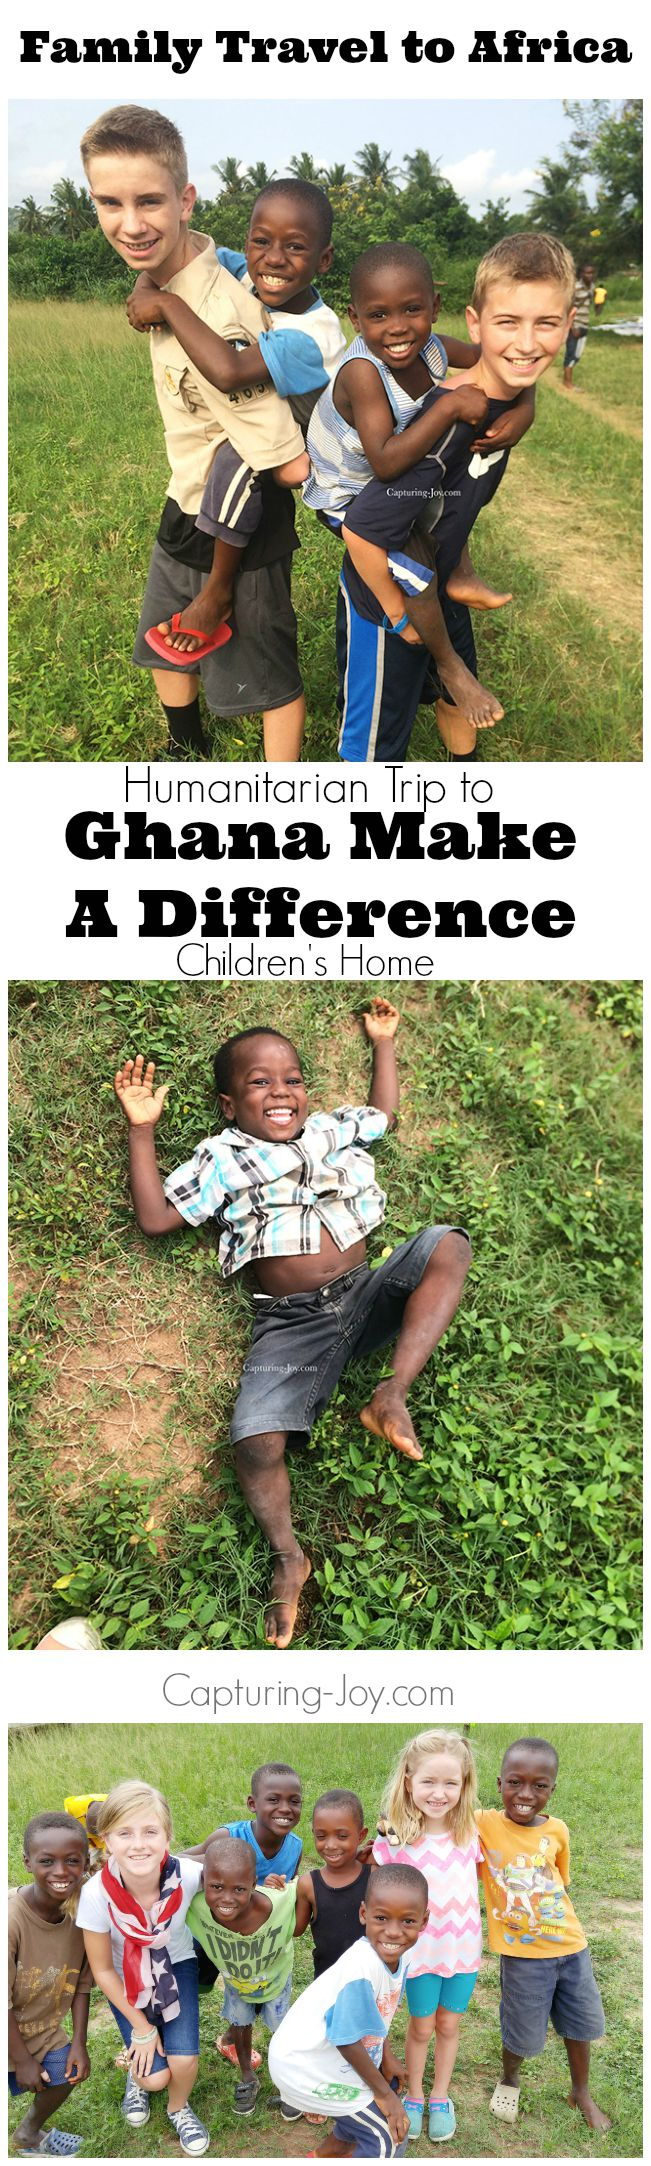 Family Travel to Africa with Humanitarian Trip to Ghana make a difference Children's Home